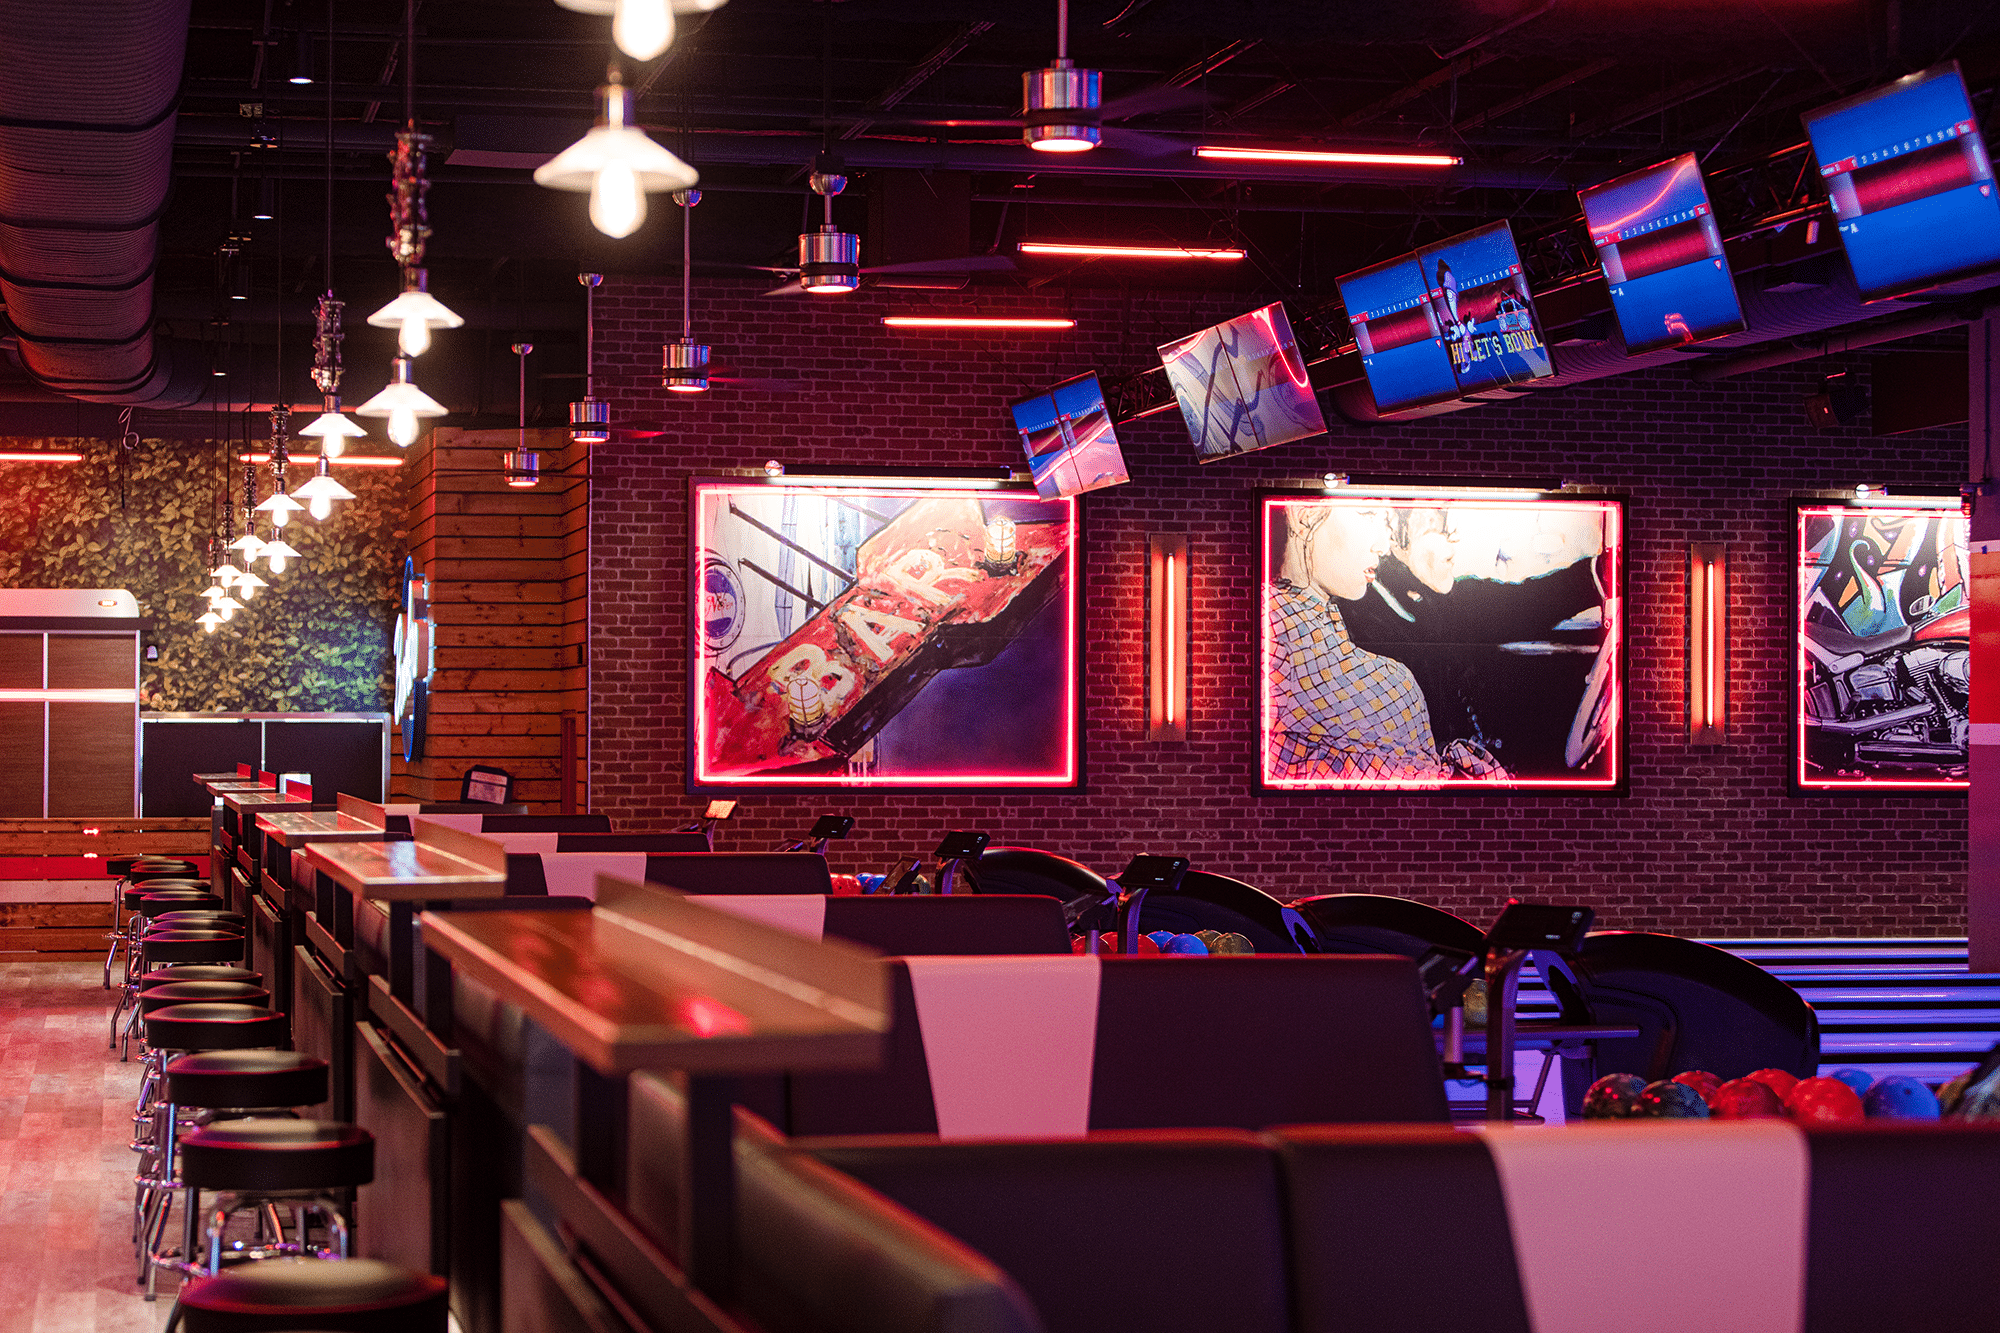 Seating with artwork and overhead tvs.